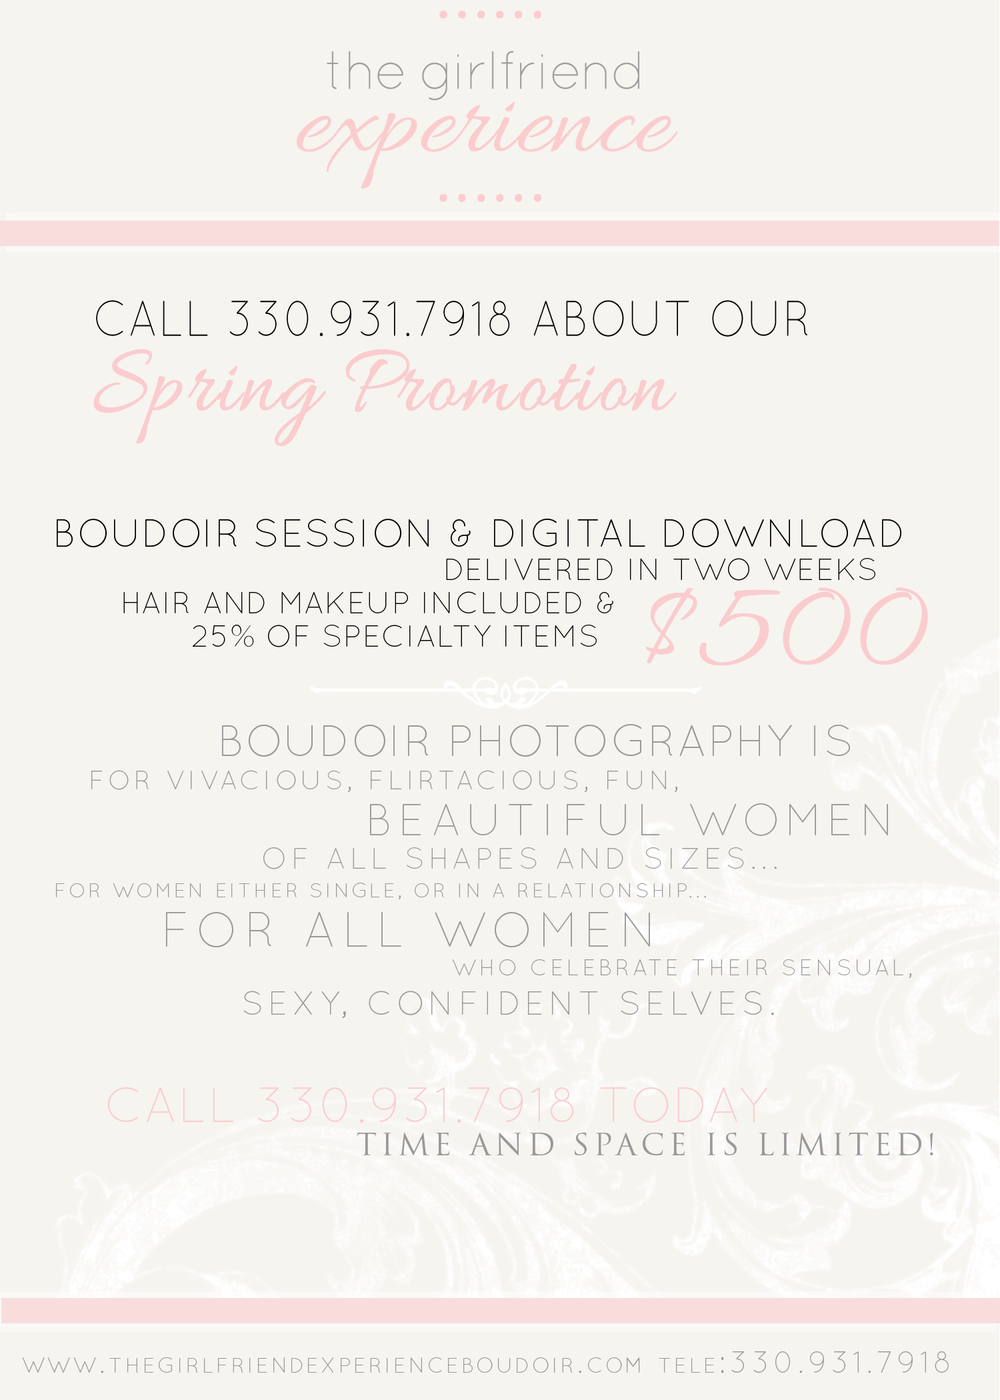 pittsburgh boudoir photography specials